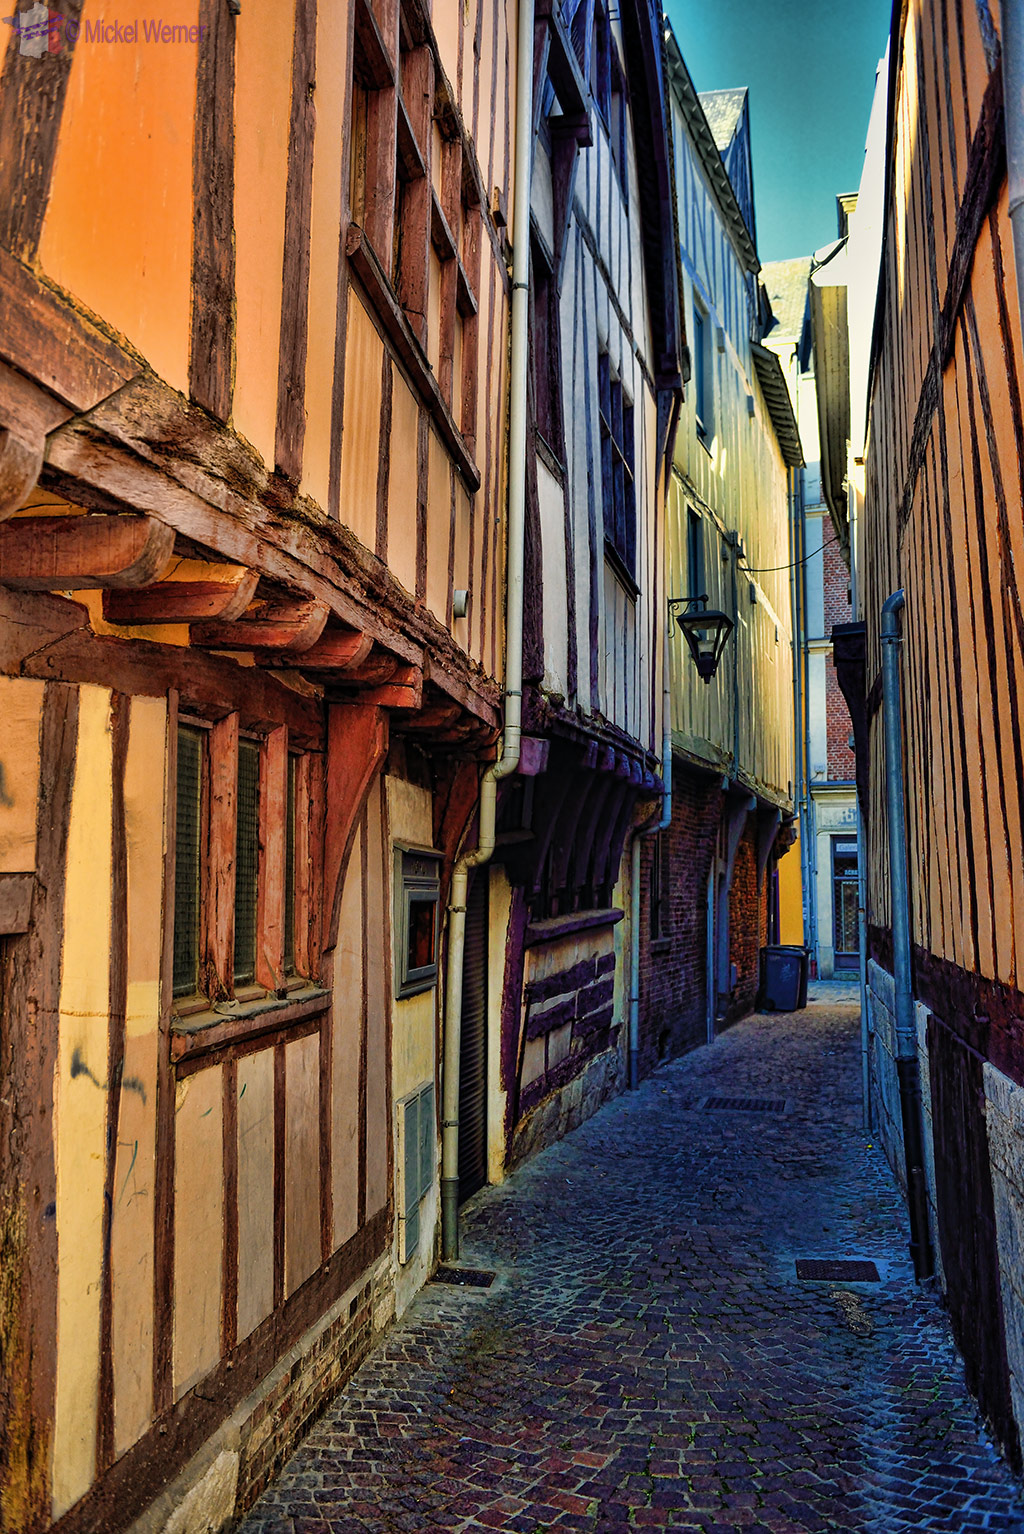 Alleyway in Rouen